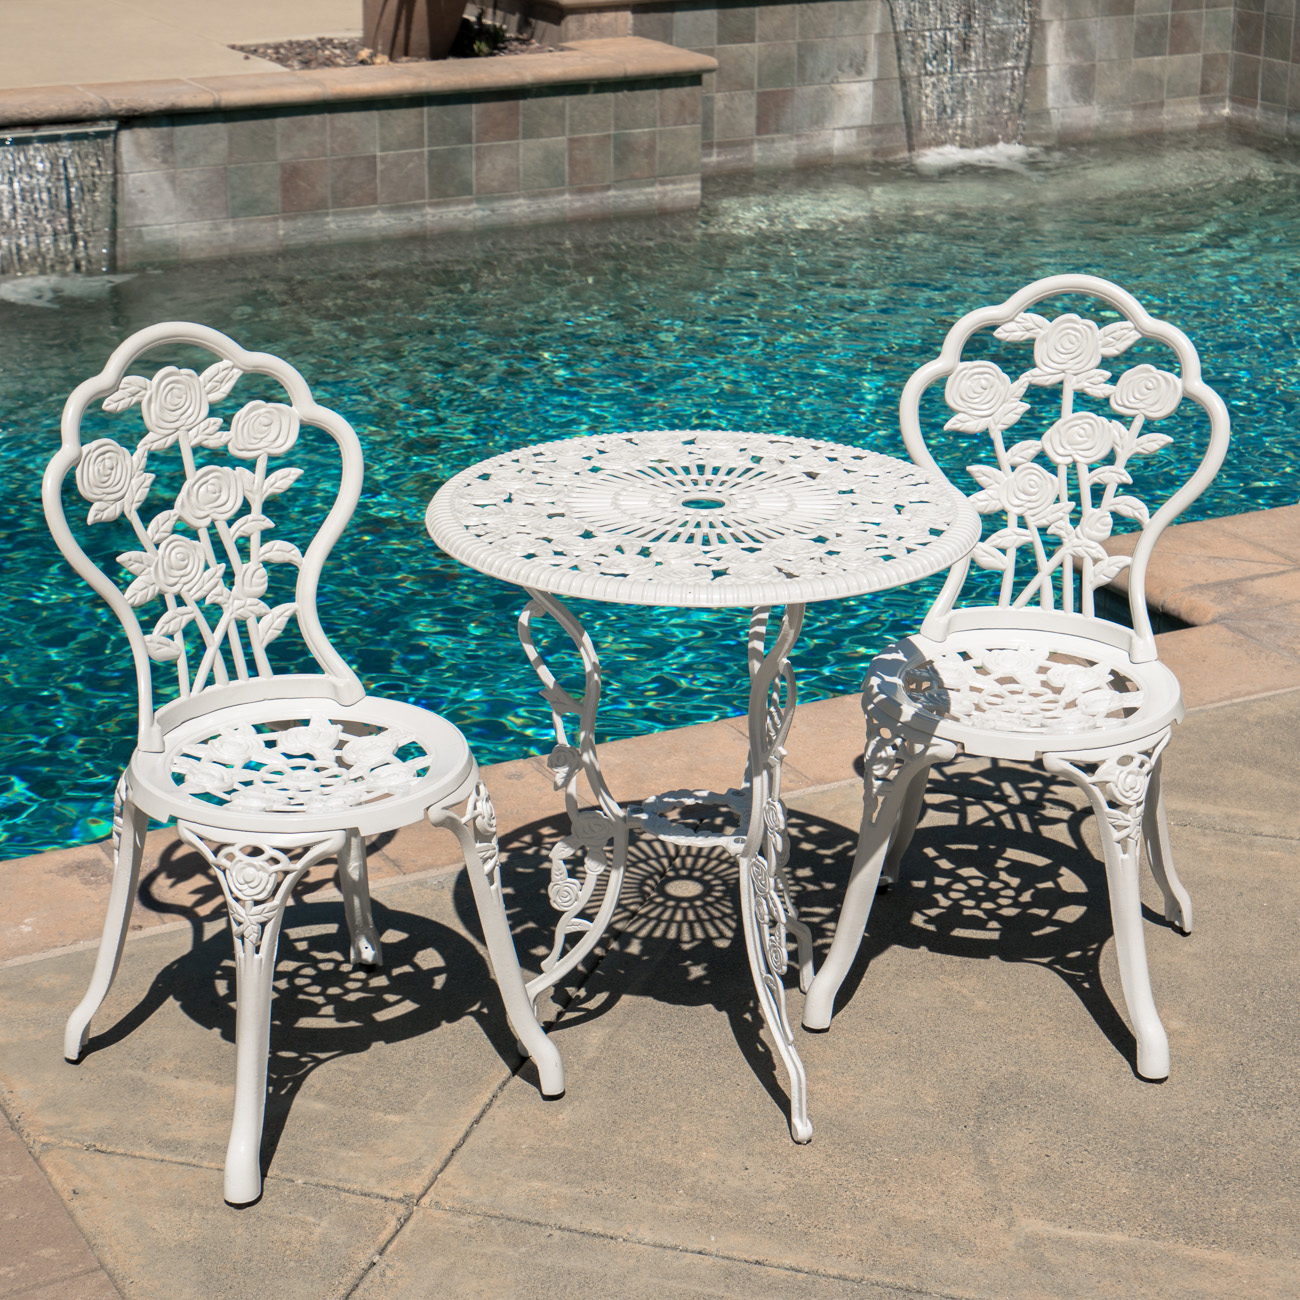 Cast Aluminum Patio Furniture Heart Pattern: Outdoor Patio Furniture Cast Aluminum Tulip Design Bistro